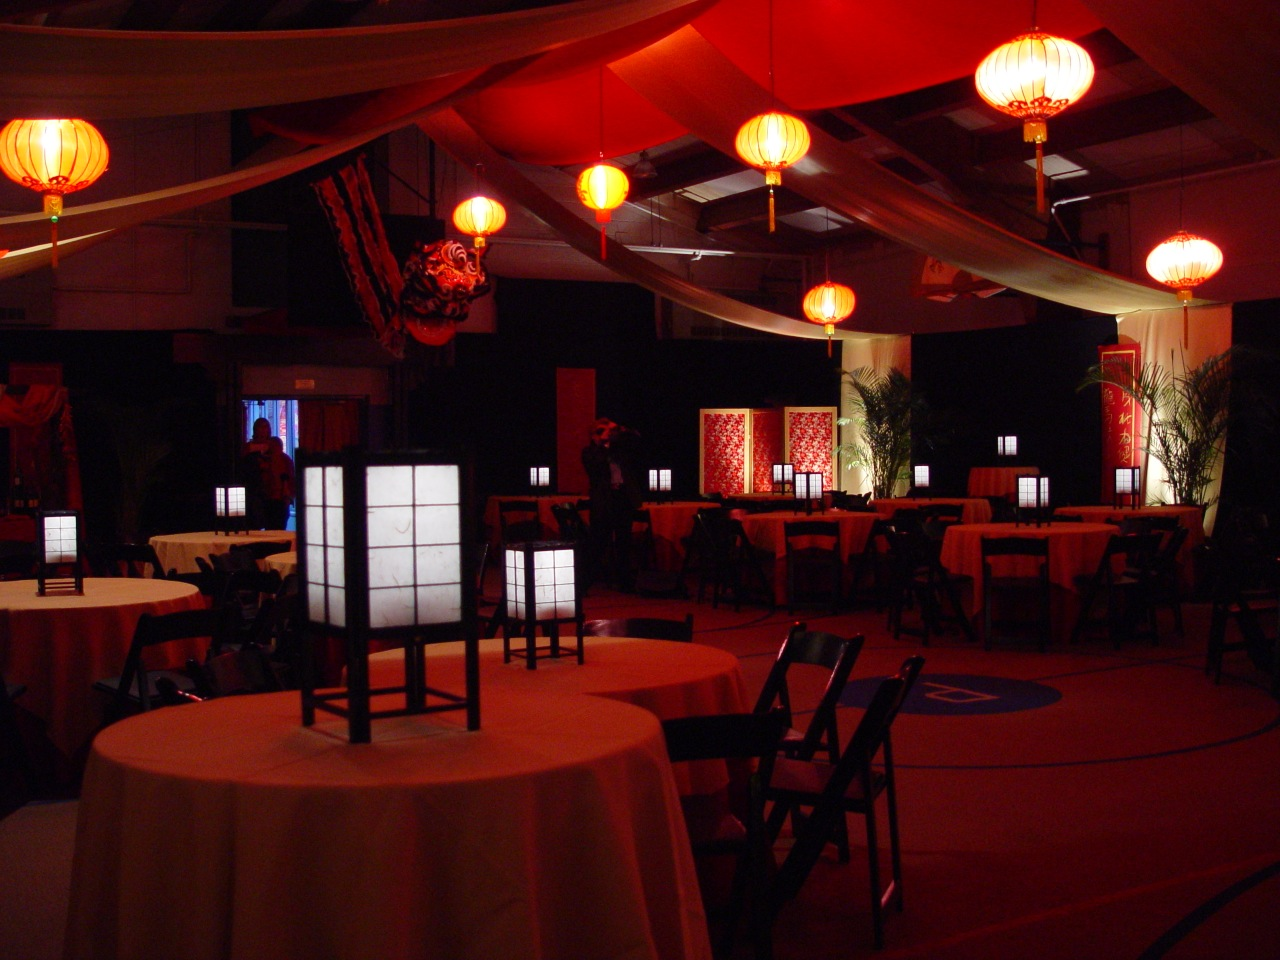 Eggsotic Events NJ NYC International Theme Party Decorations and Lighting 07.jpg